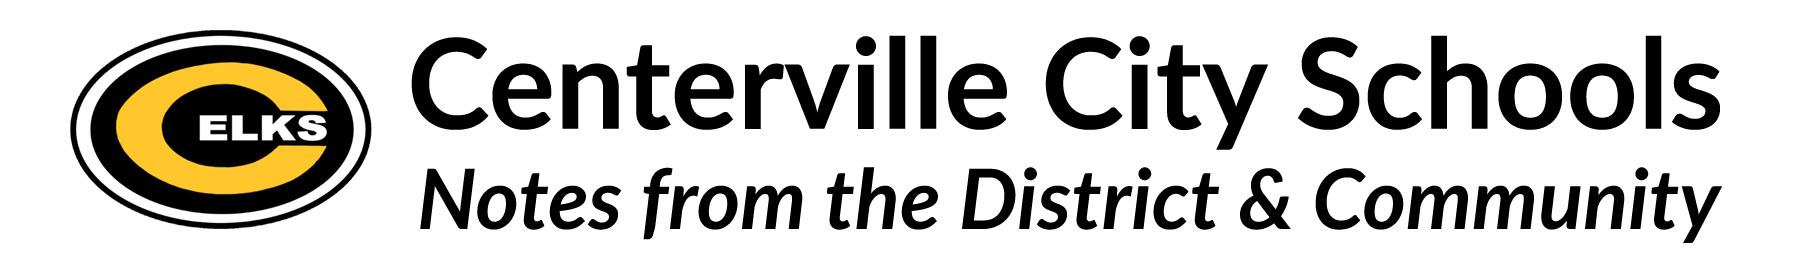 Centerville City Schools: Notes from the District and Community